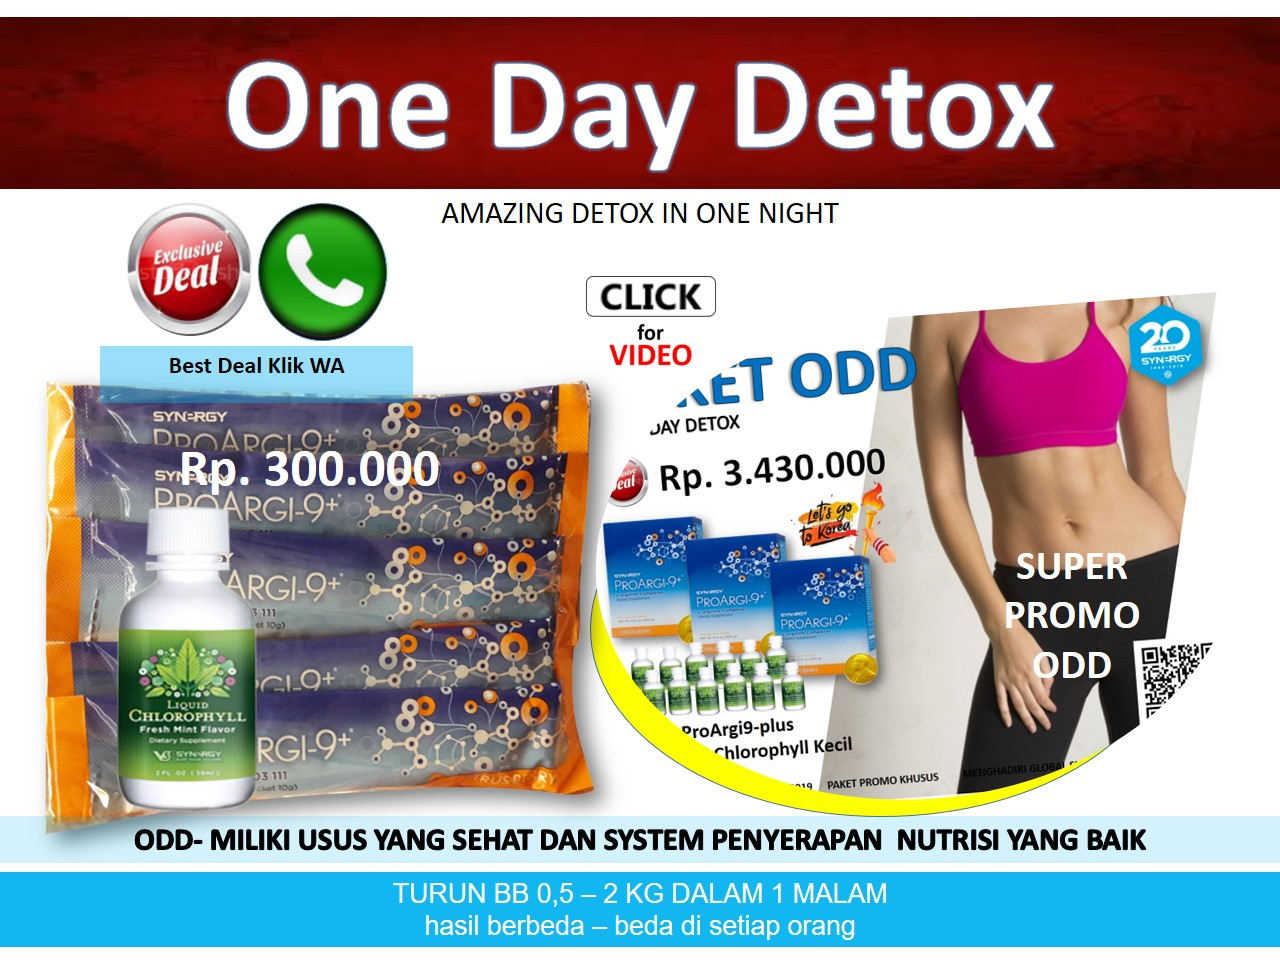 AMAZING - One Day Detox